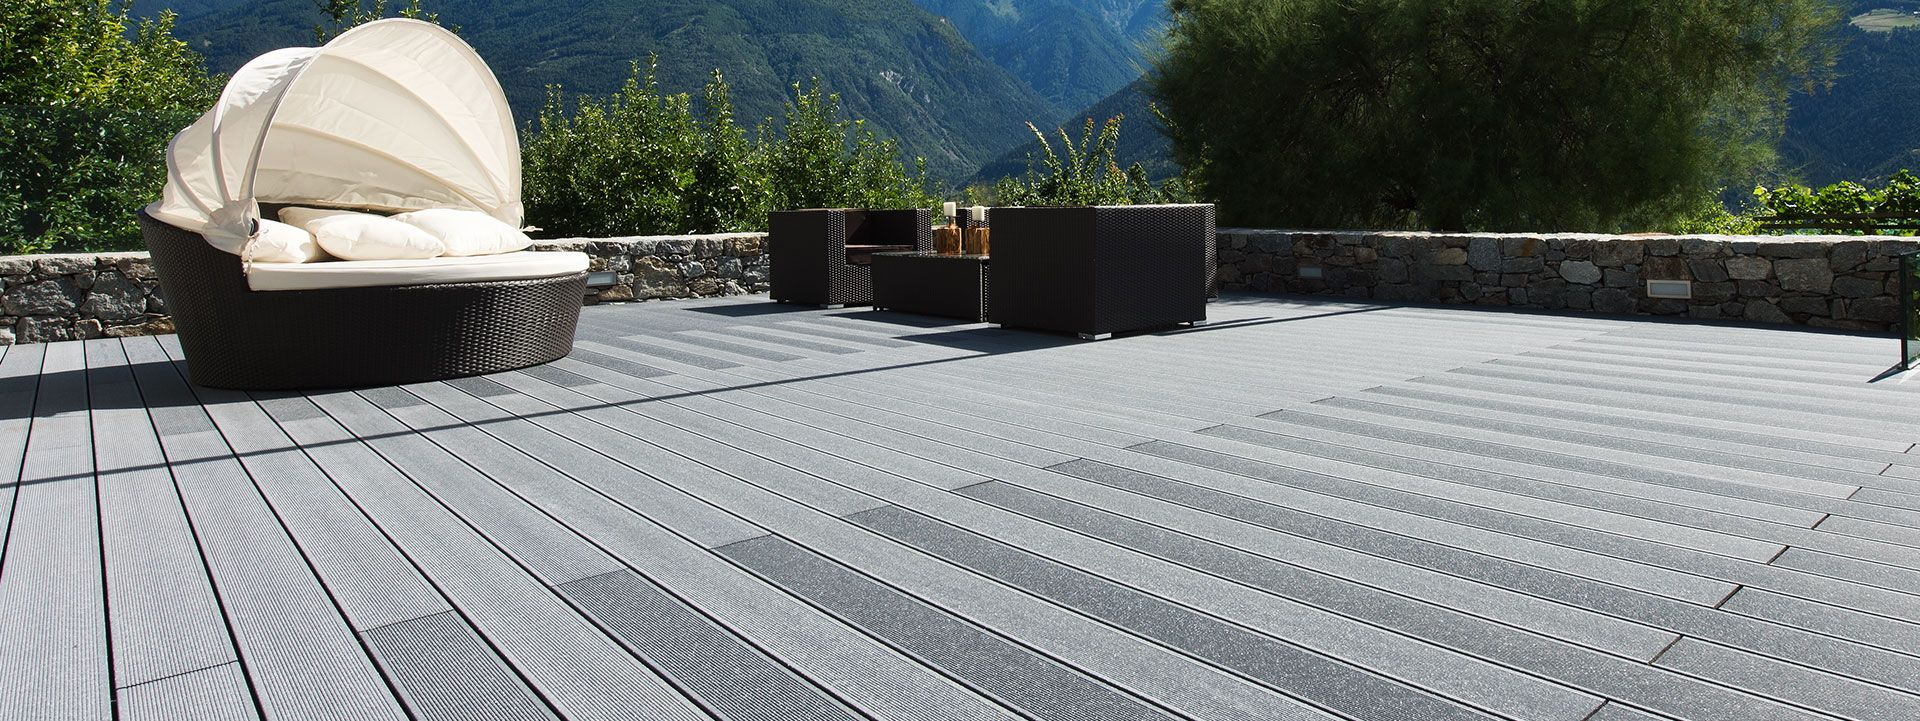 High Quality Plastic Patio Deck Materials